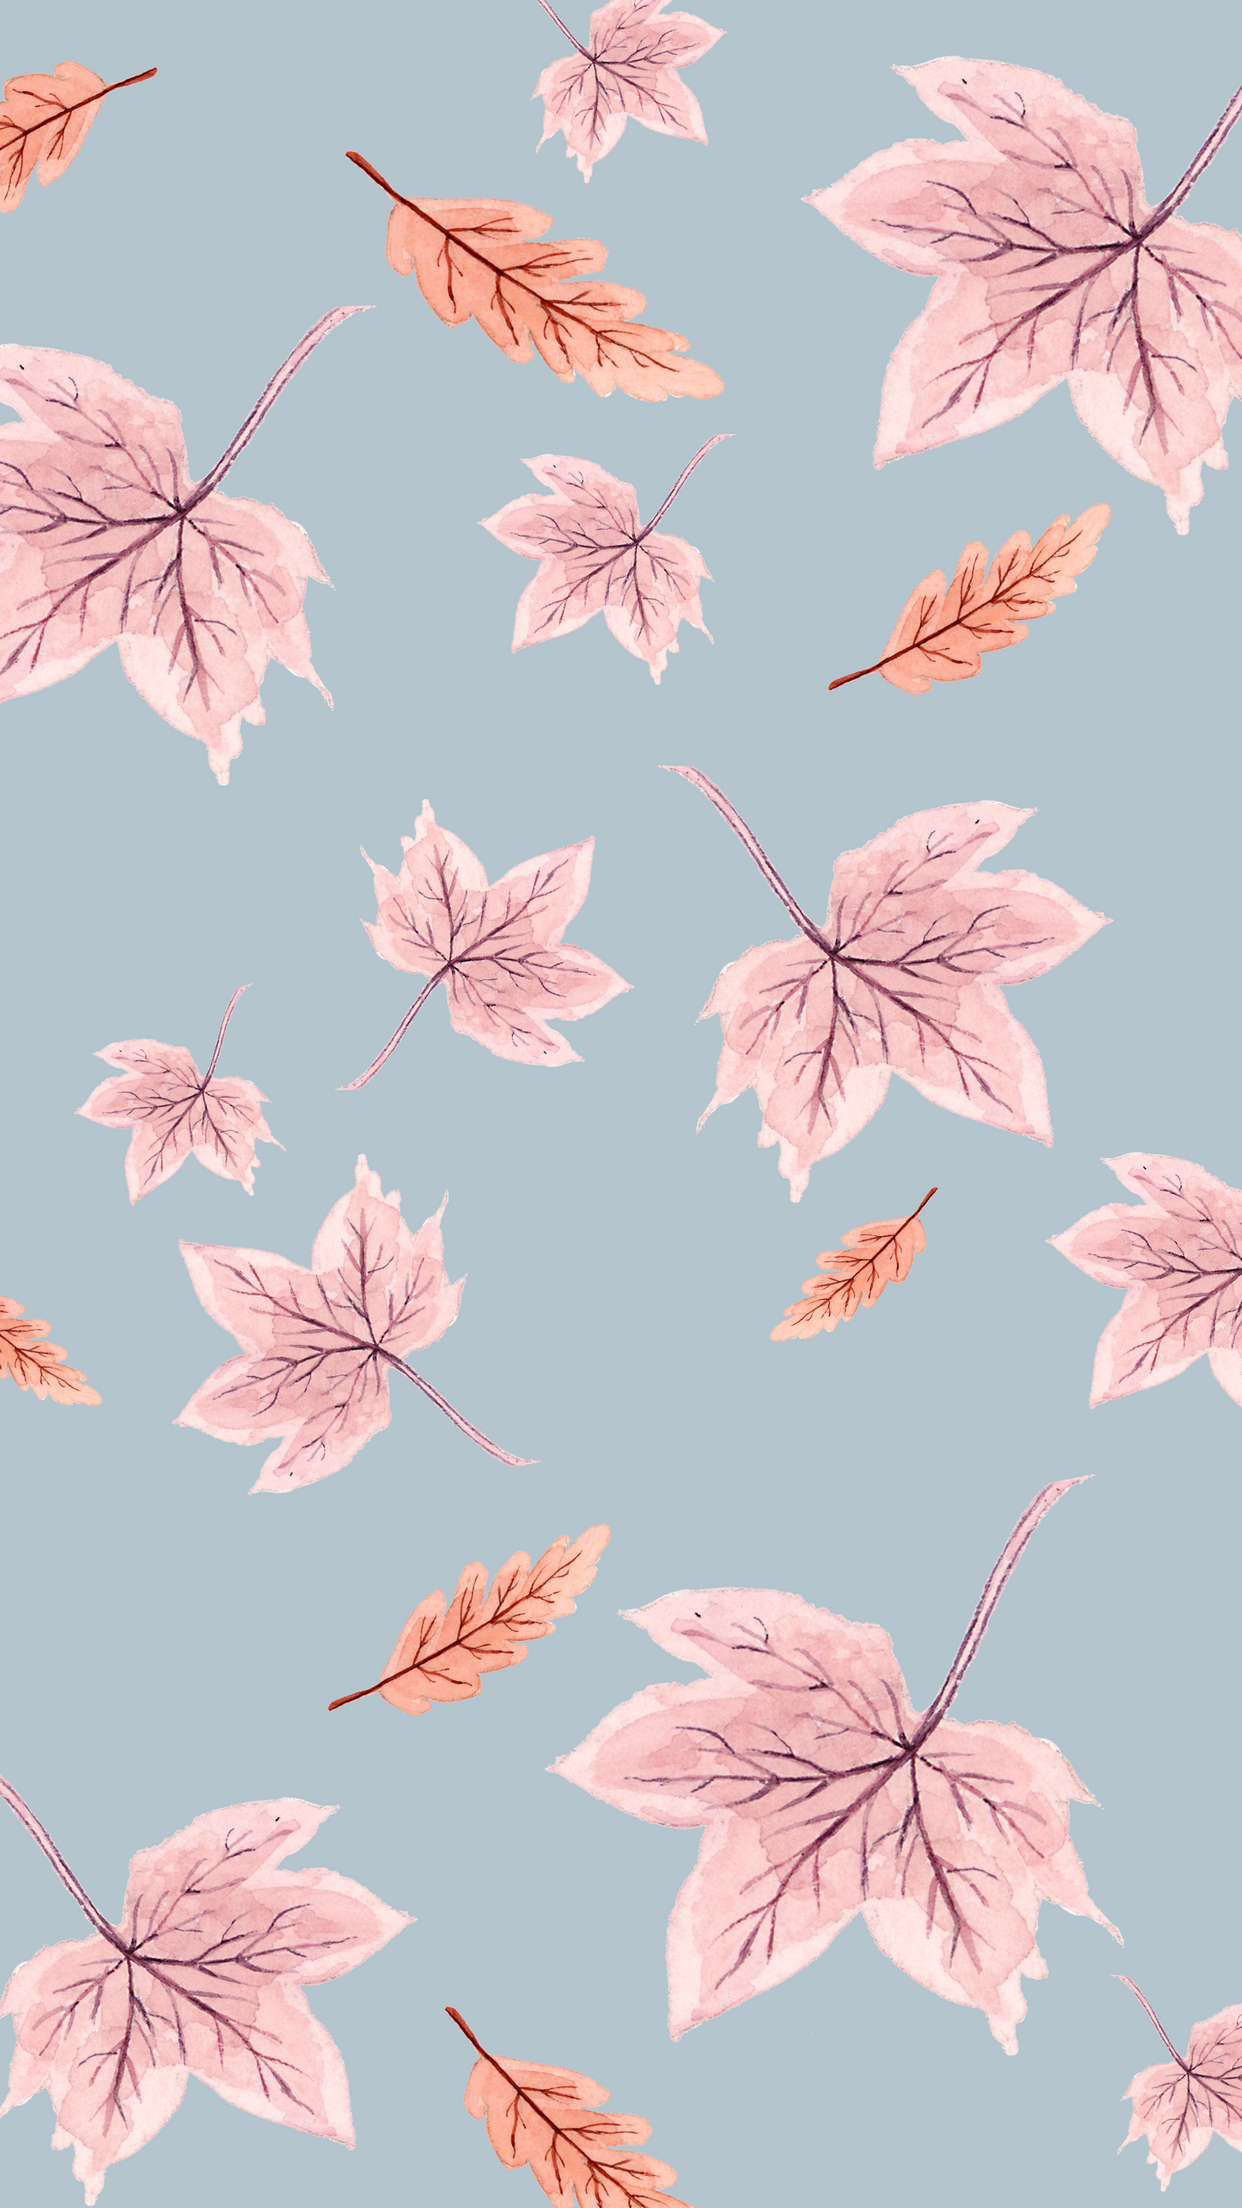 Free Fall Phone Wallpapers - Love and Specs